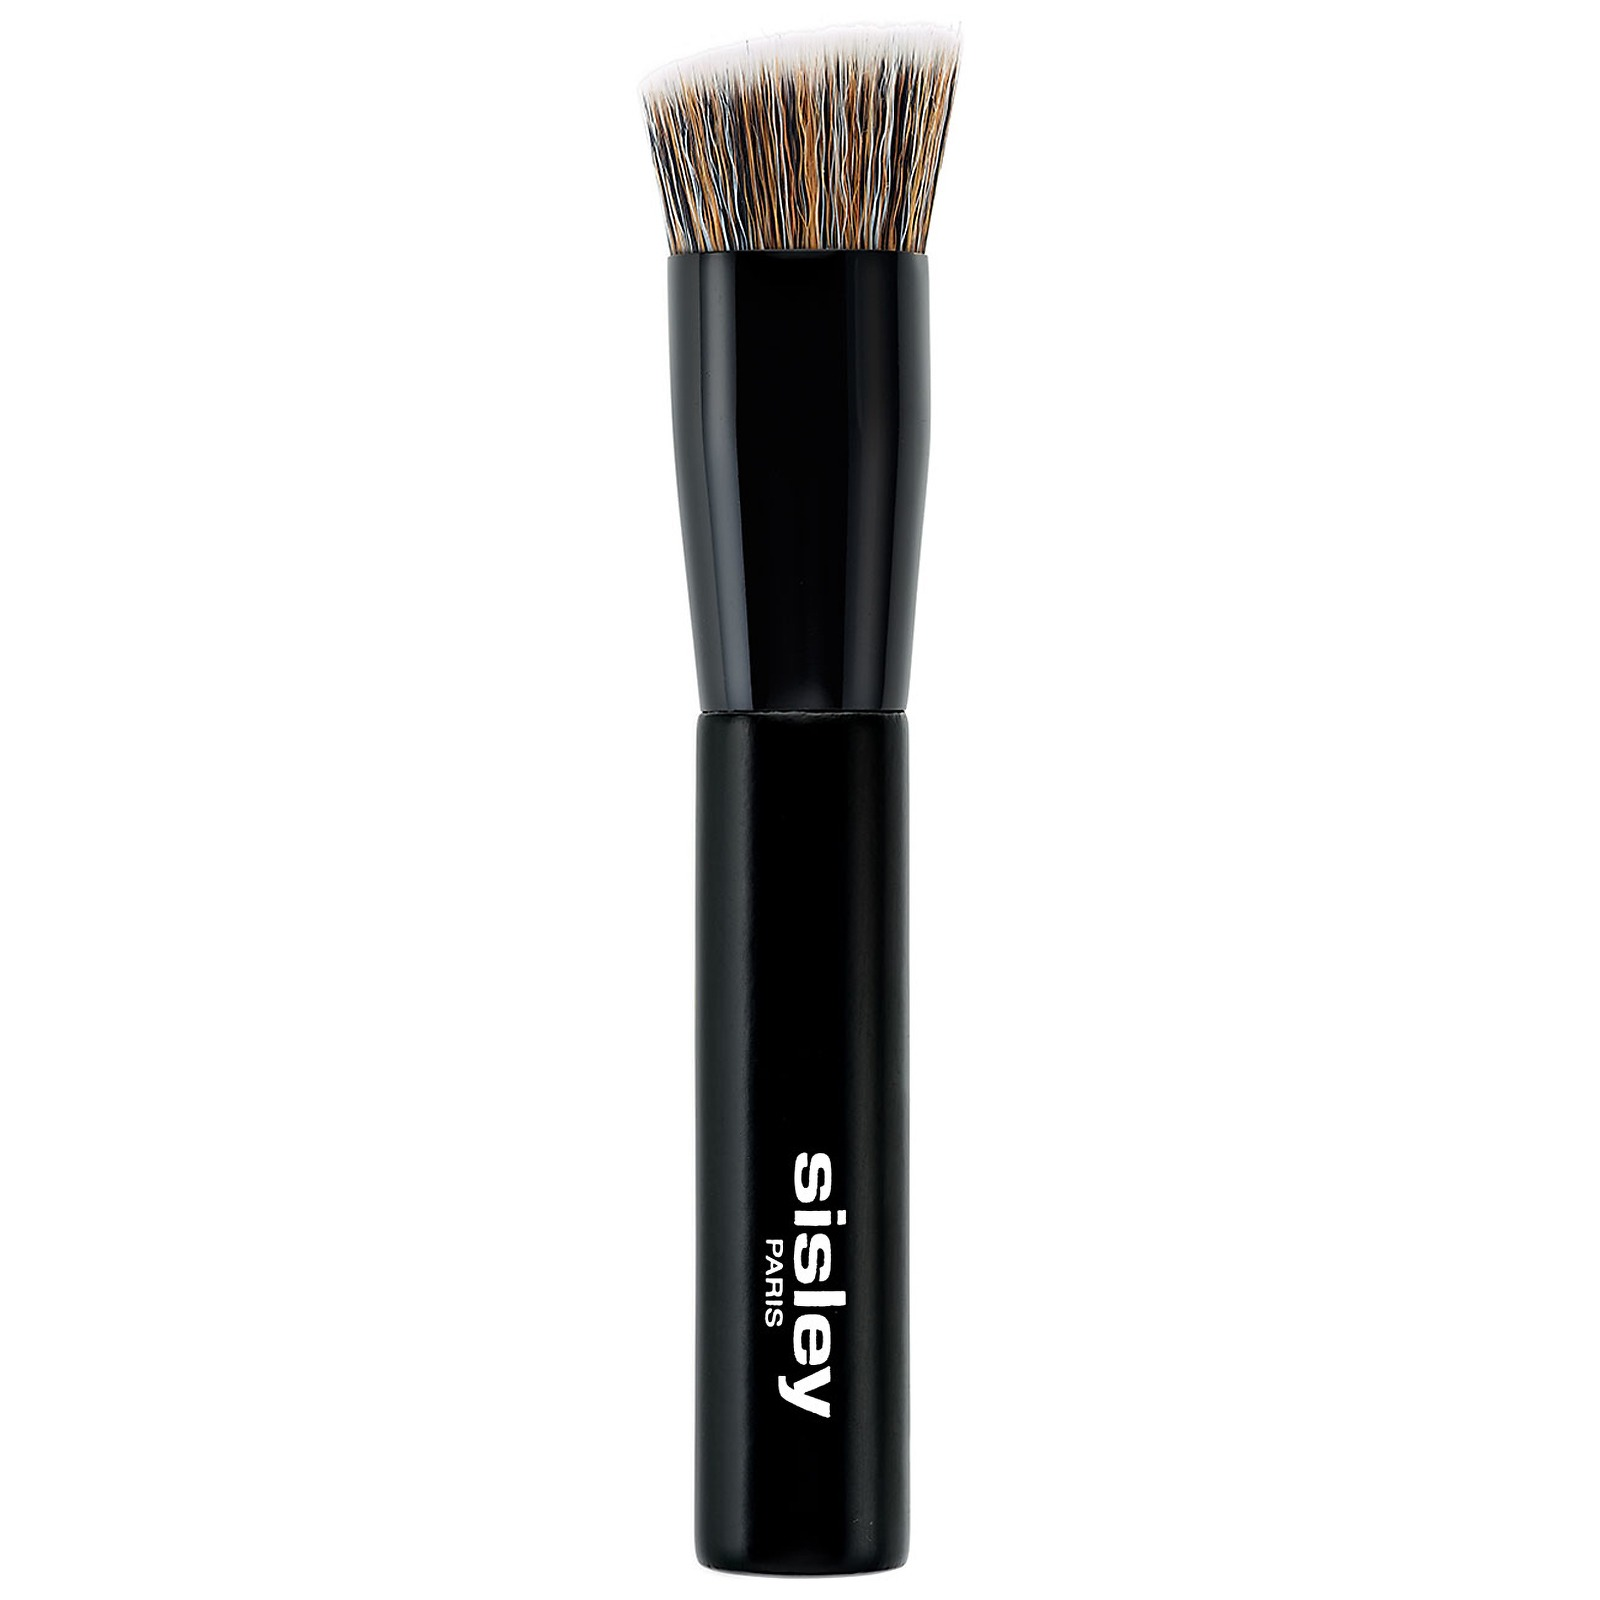 Sisley Brushes Foundation Brush